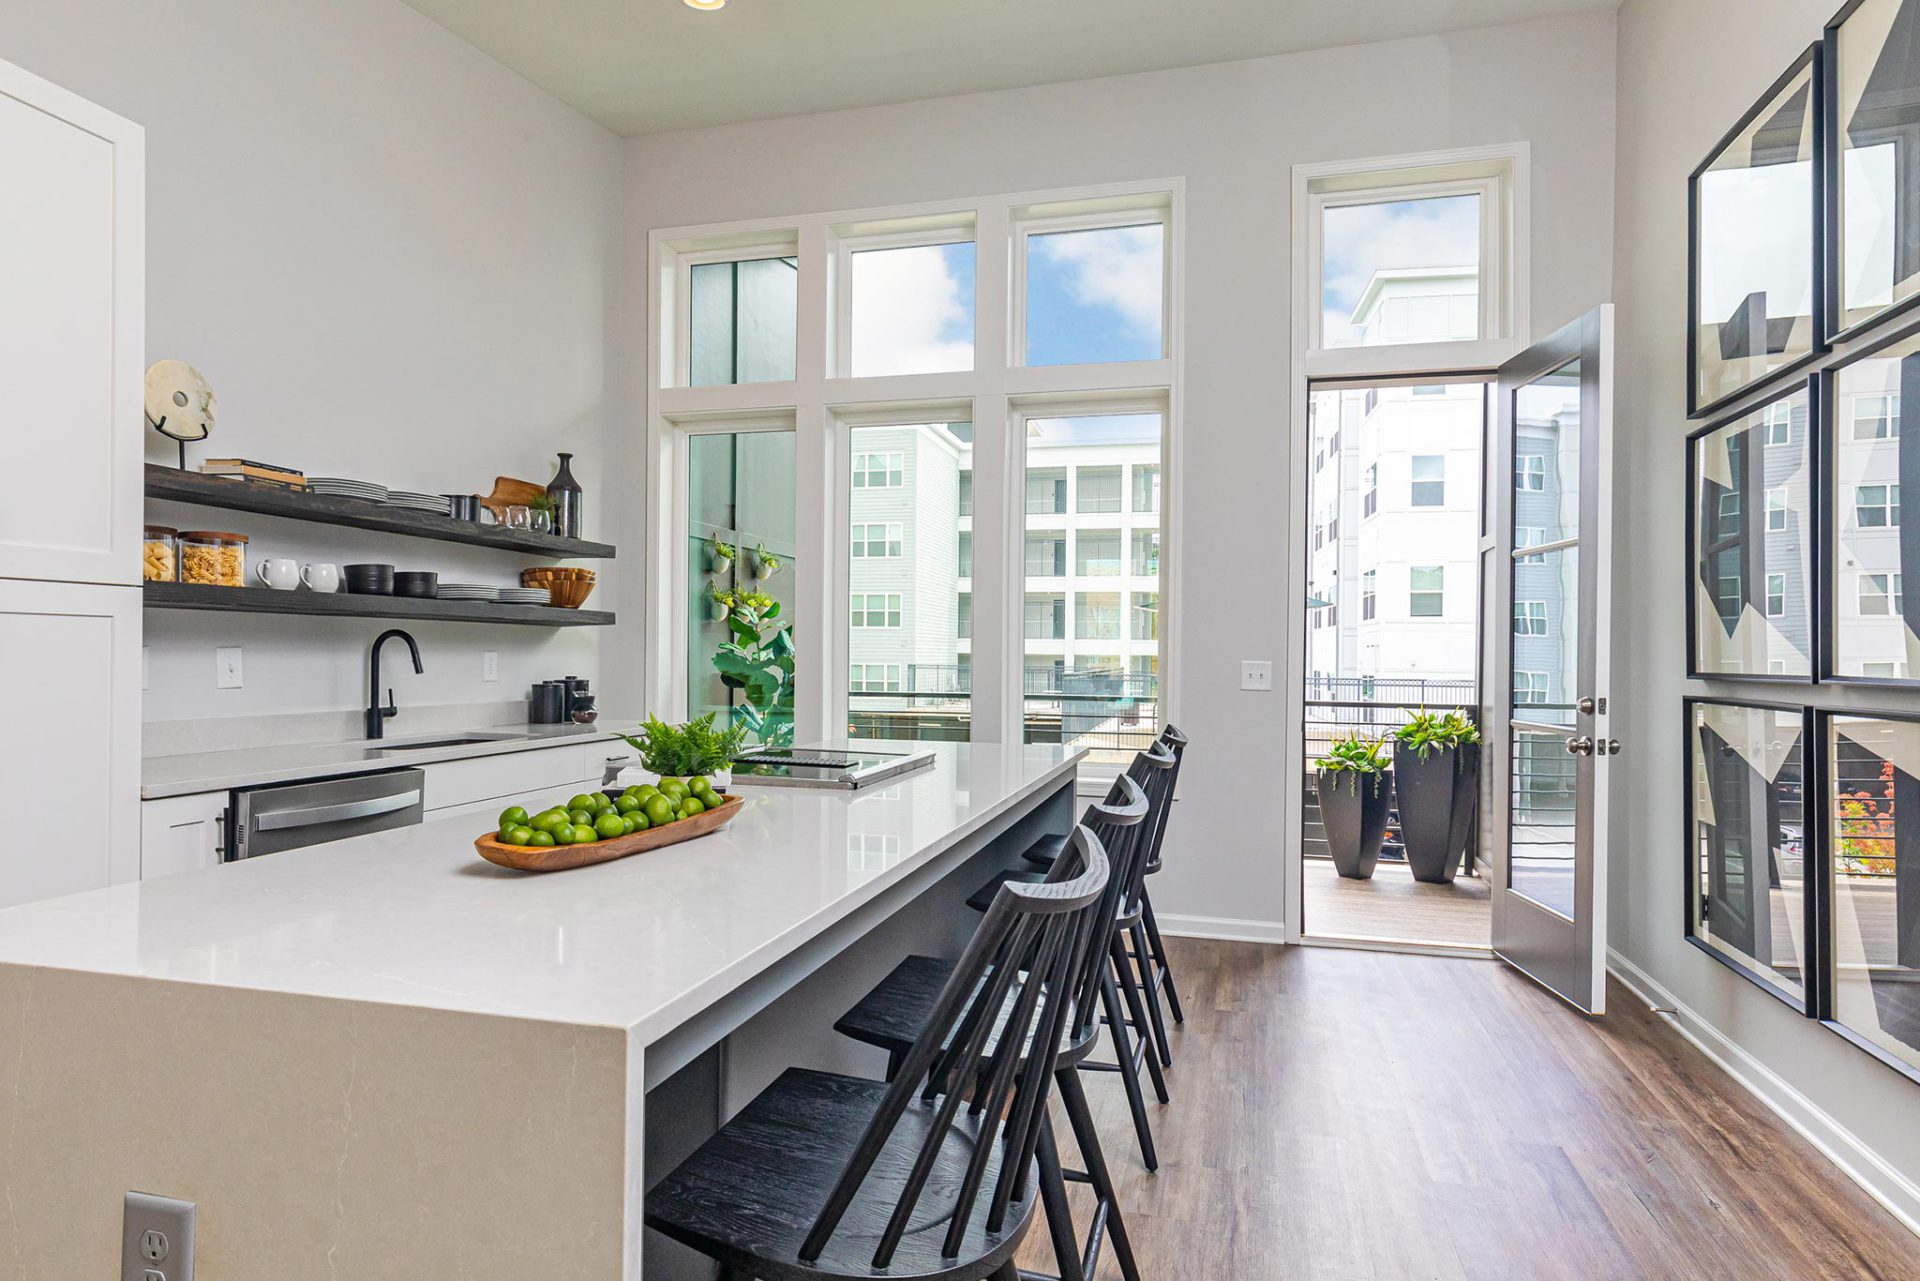 Step Inside Our Designer Townhome at 4Forty4 in Old Fourth Wardimage_block-block_5f622e1970147